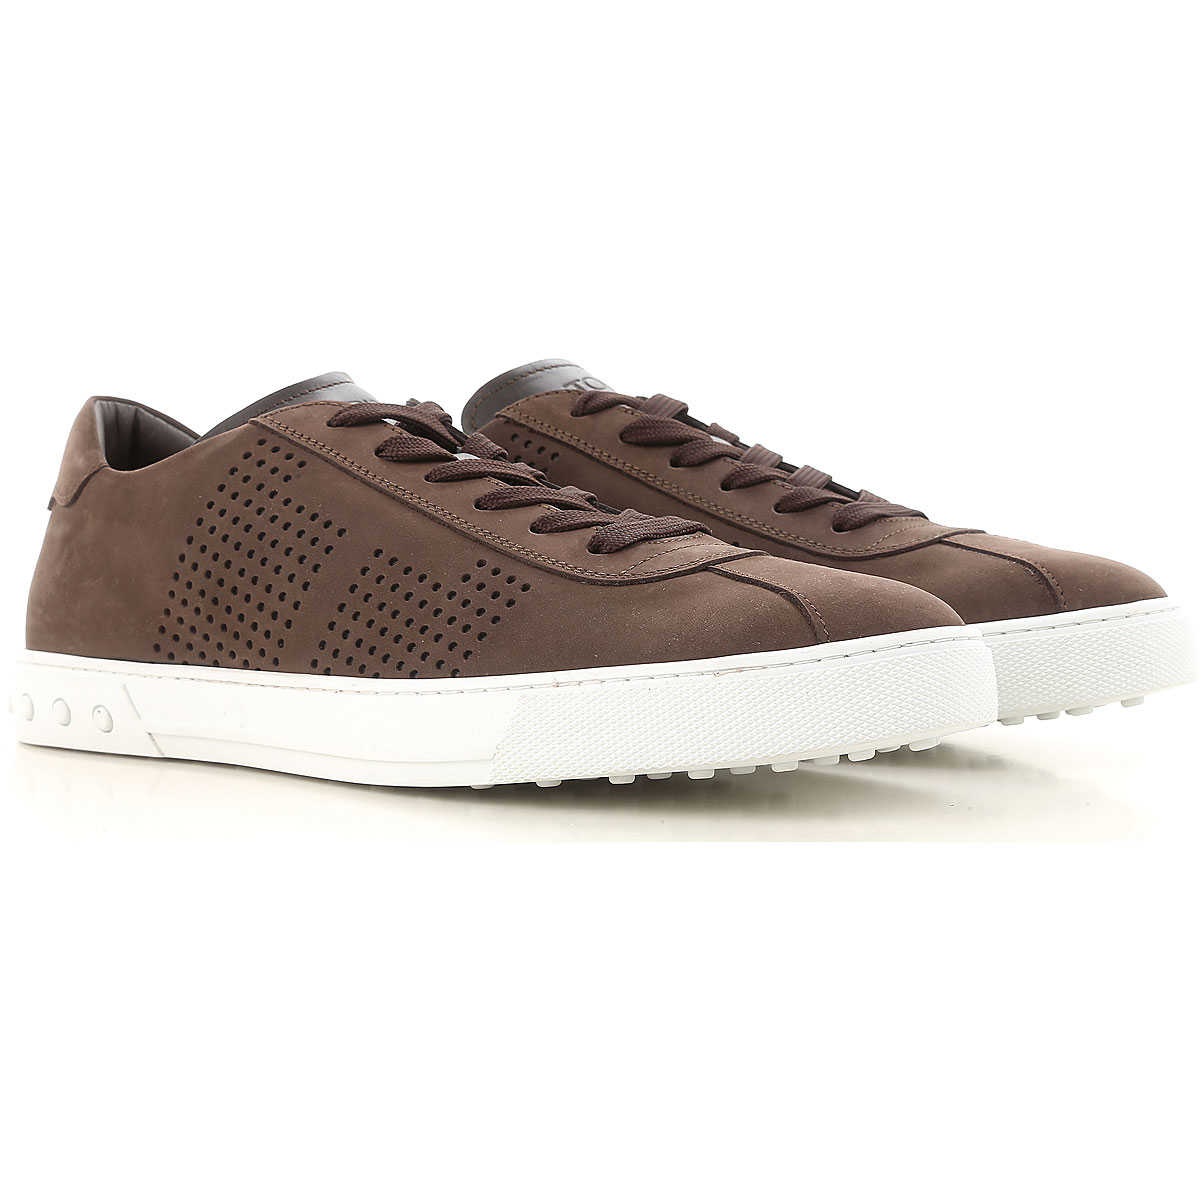 Tods Sneakers for Men Brown USA - GOOFASH